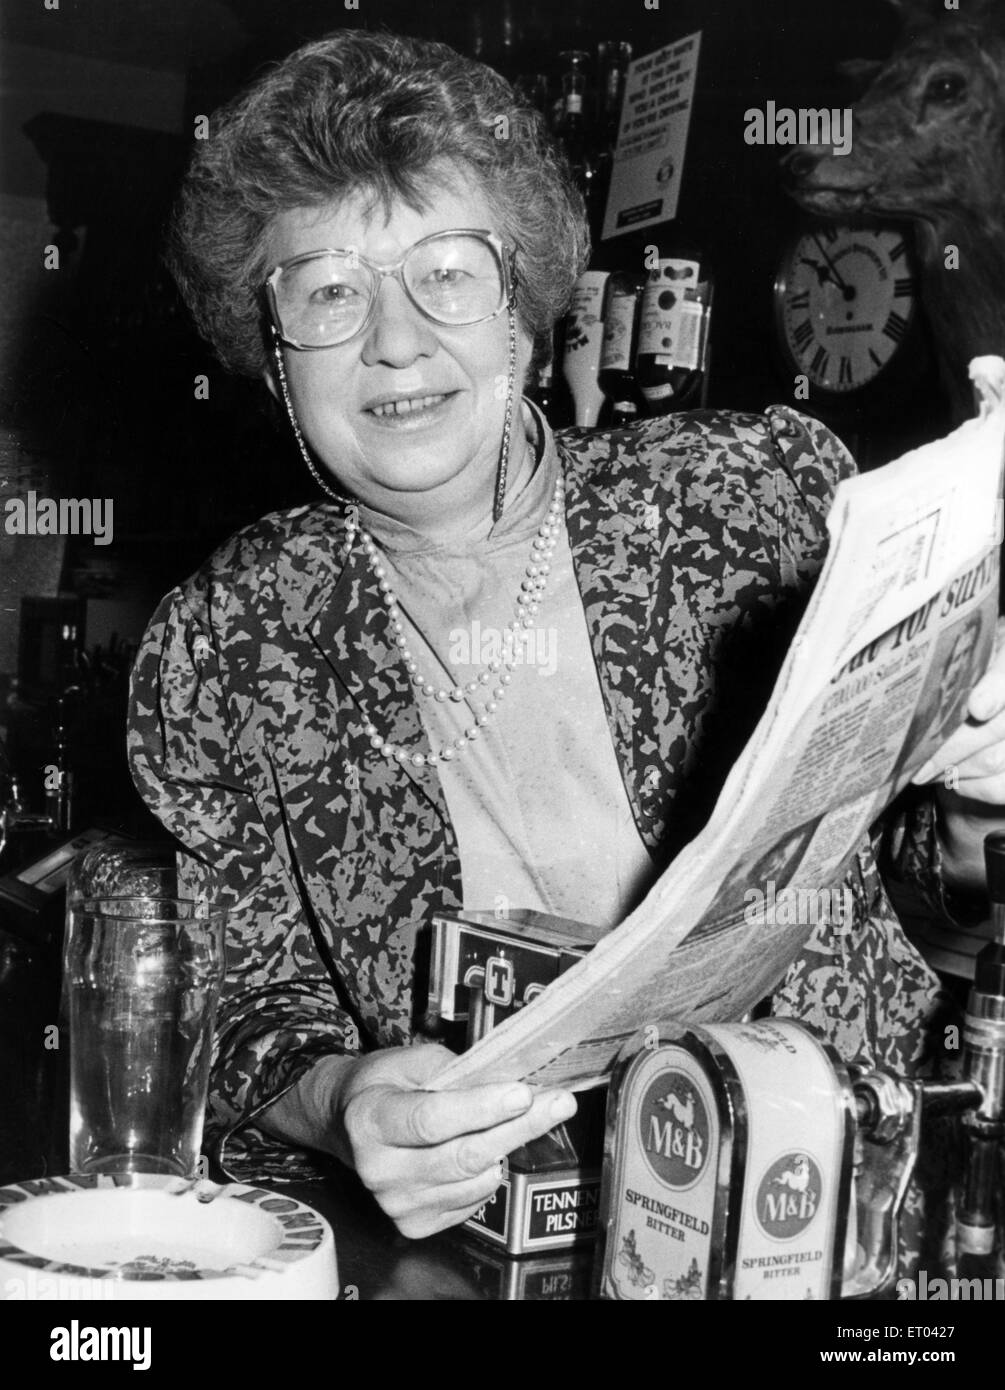 Birdie Wynne, Land Lady of The Stag, Bishop Street, Coventry, 20th March 1989. - Stock Image